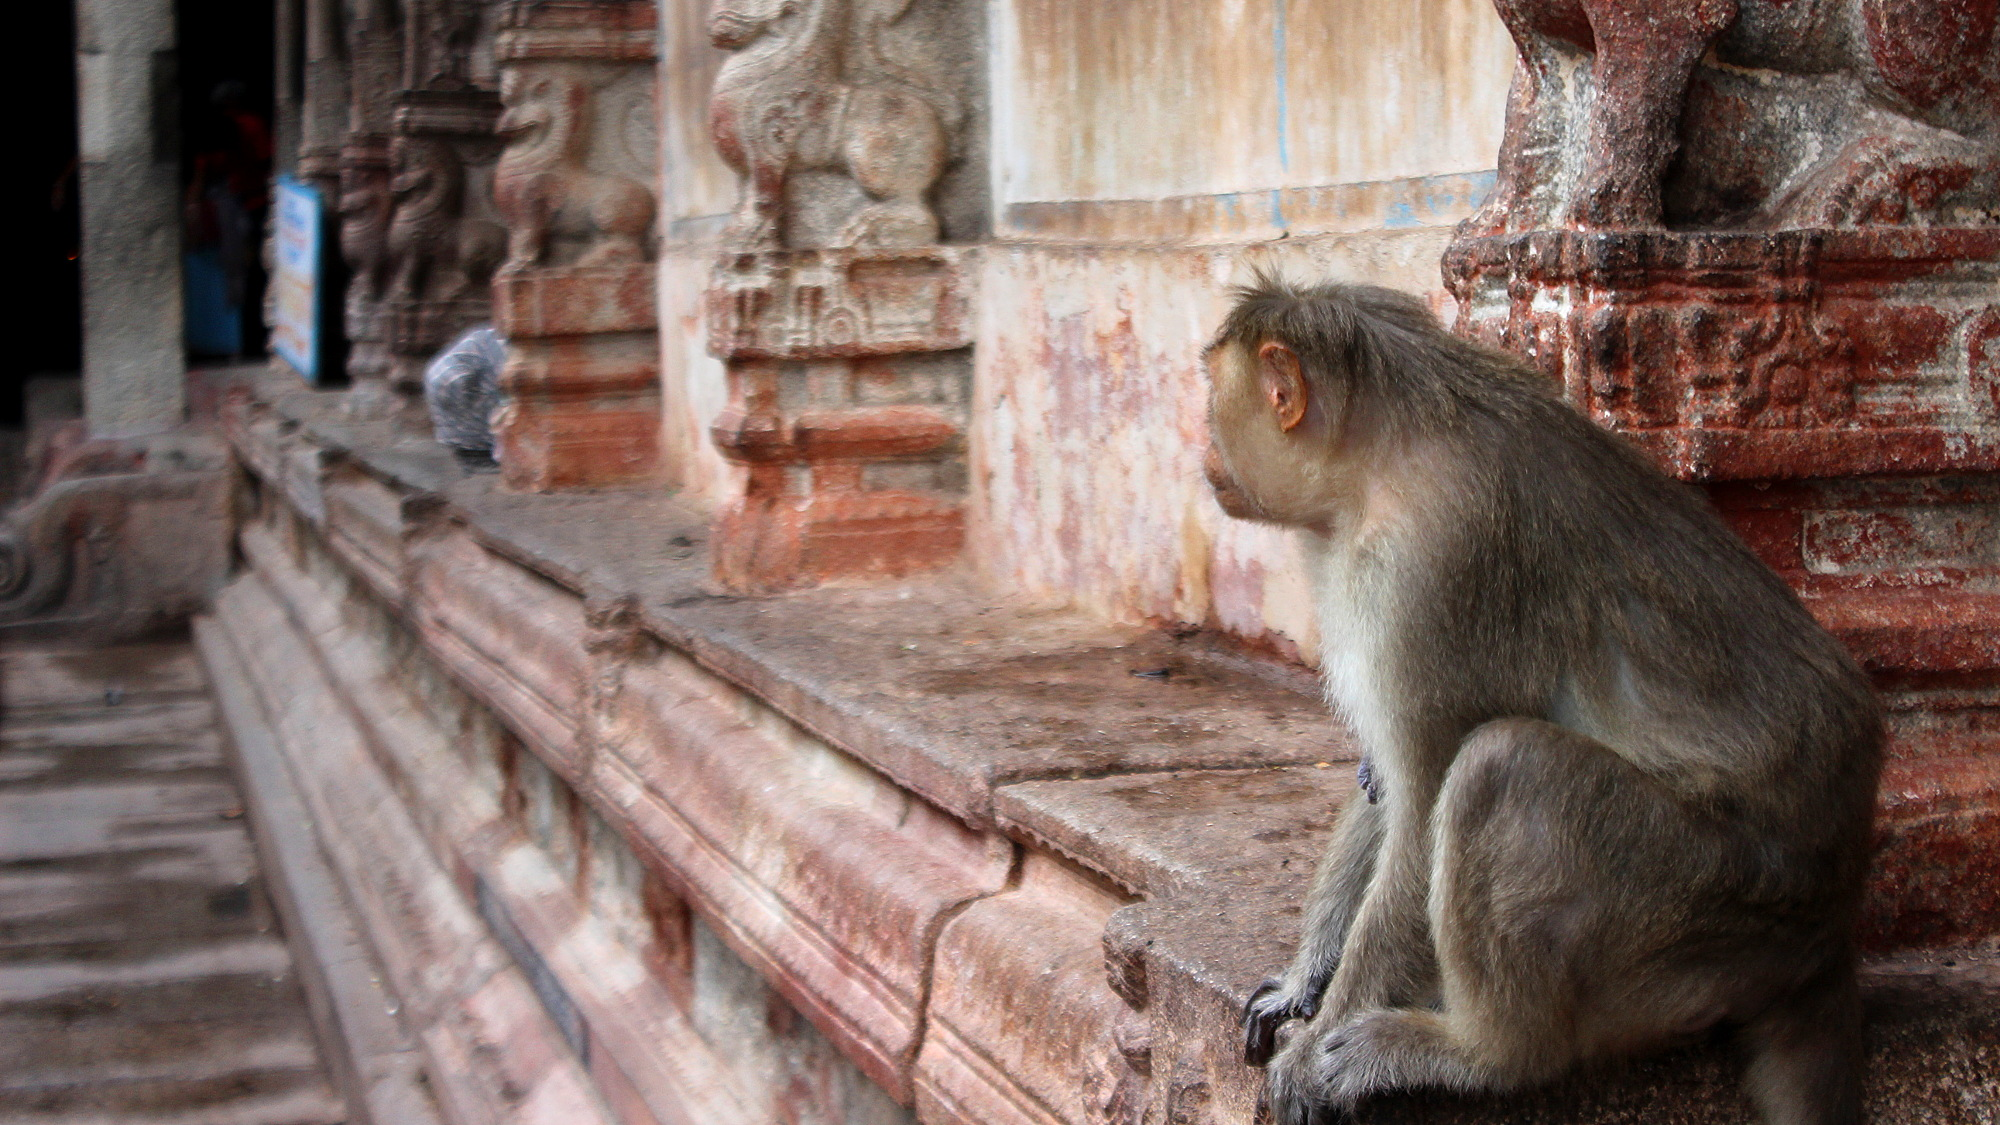 A monkey in a temple looking behind a corner at a plastic pack it tried to investigate earlier.